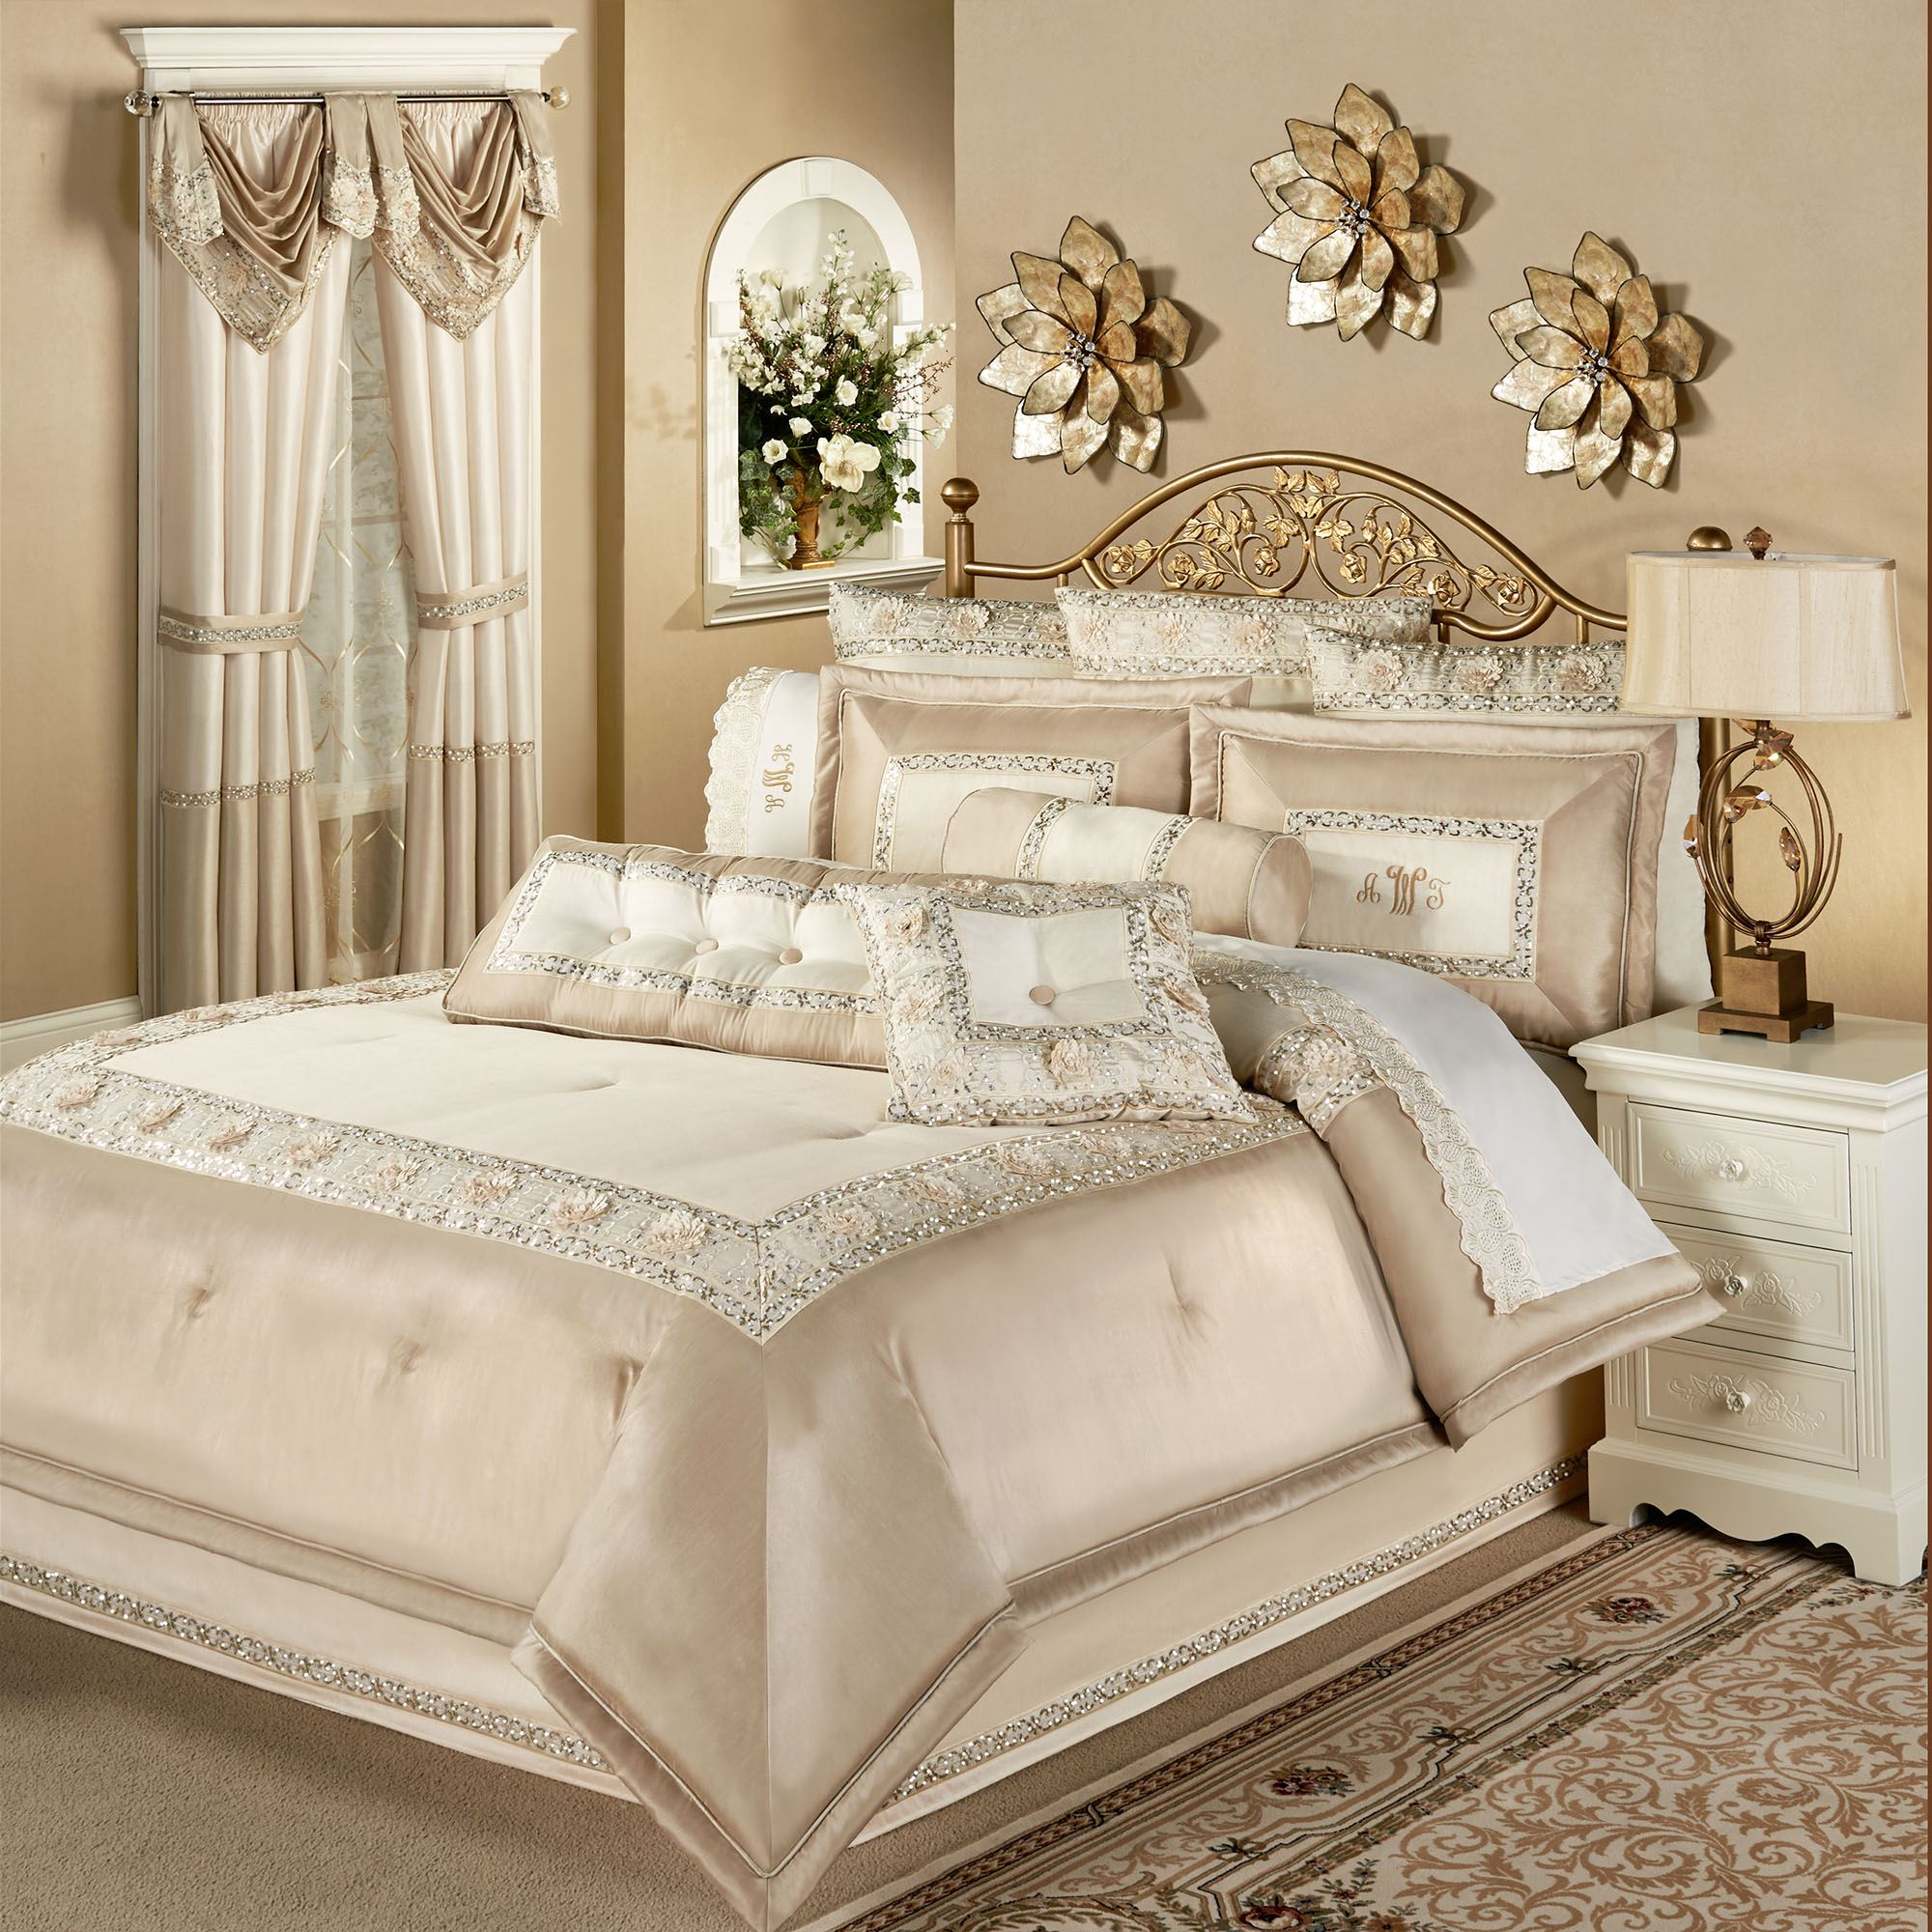 Luxury Bedding  Piece Comforter Set Queen In Elegante